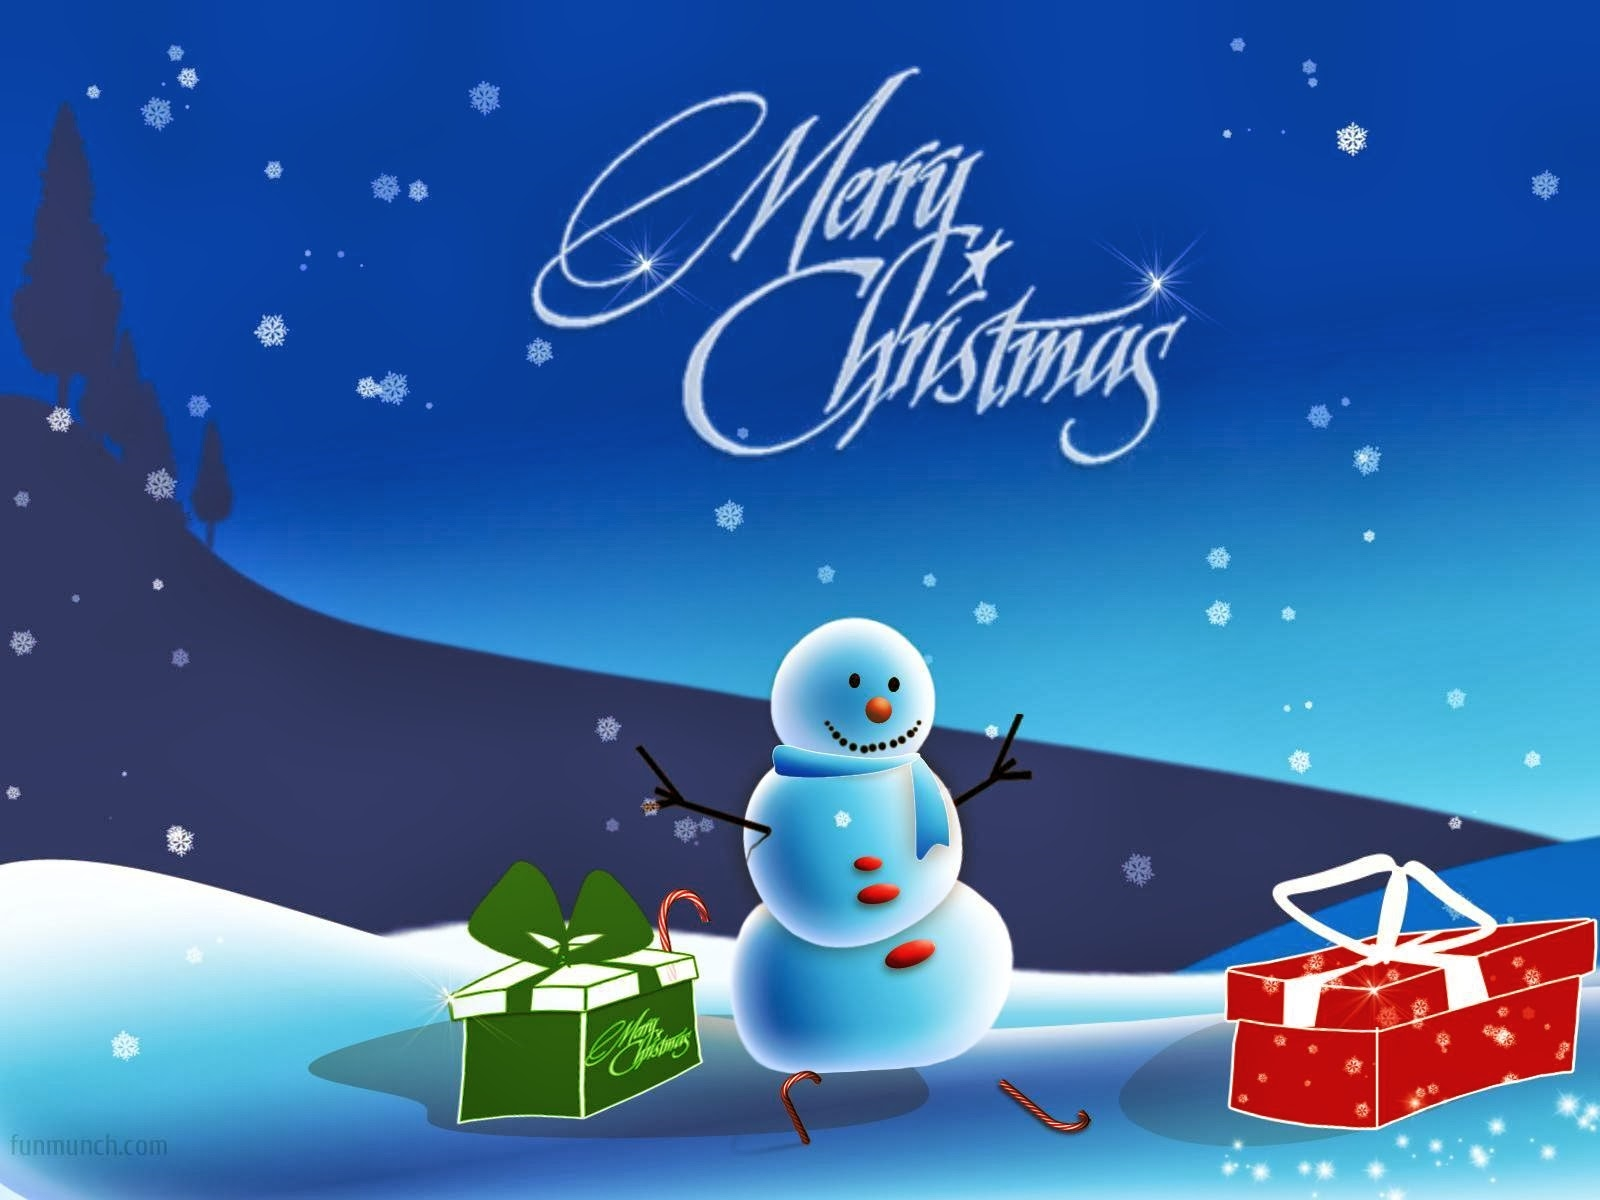 merry christmas snow man wallpaper hd